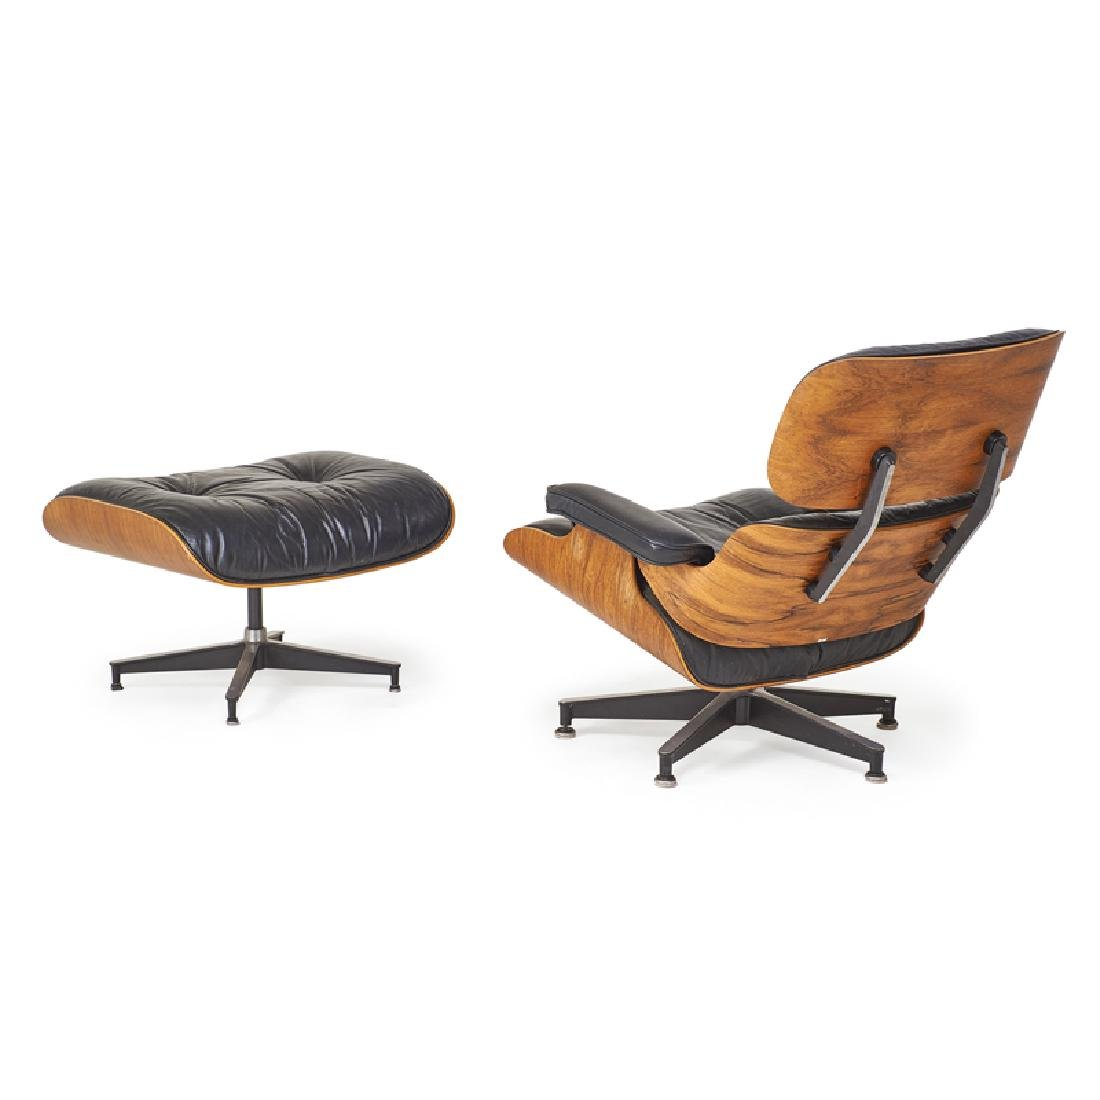 CHARLES AND RAY EAMES Lounge chair and ottoman - 3